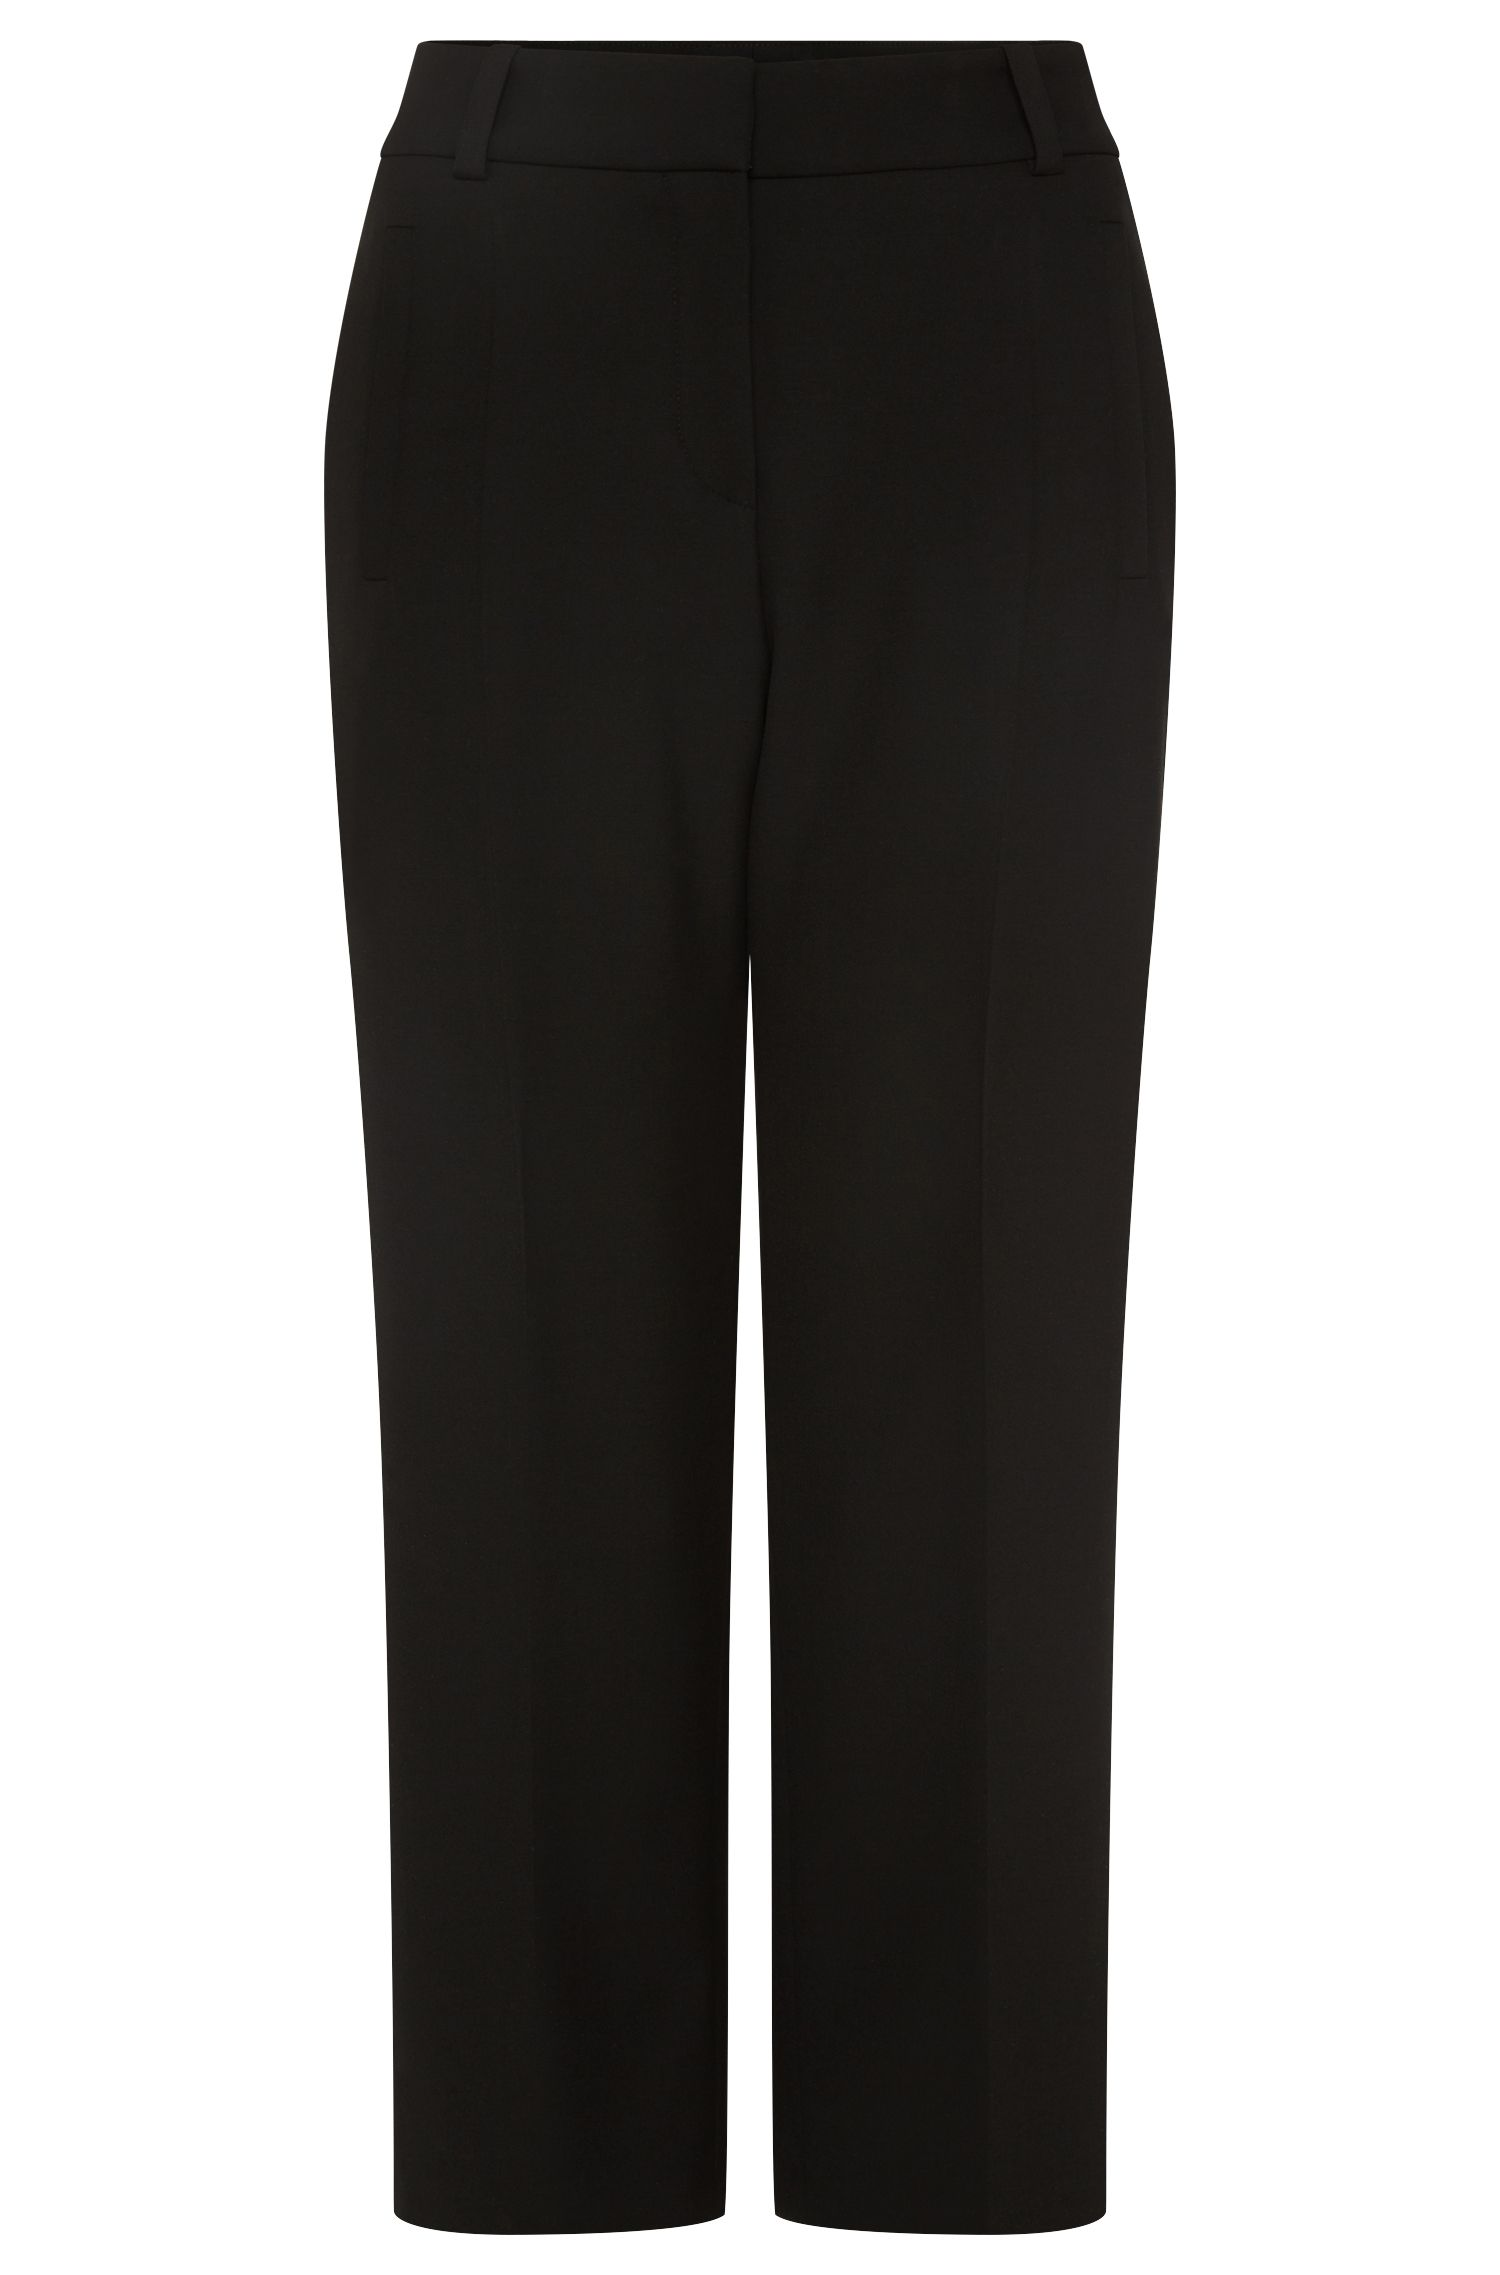 'Helizia' | Stretch Cotton Blend Ankle Pants